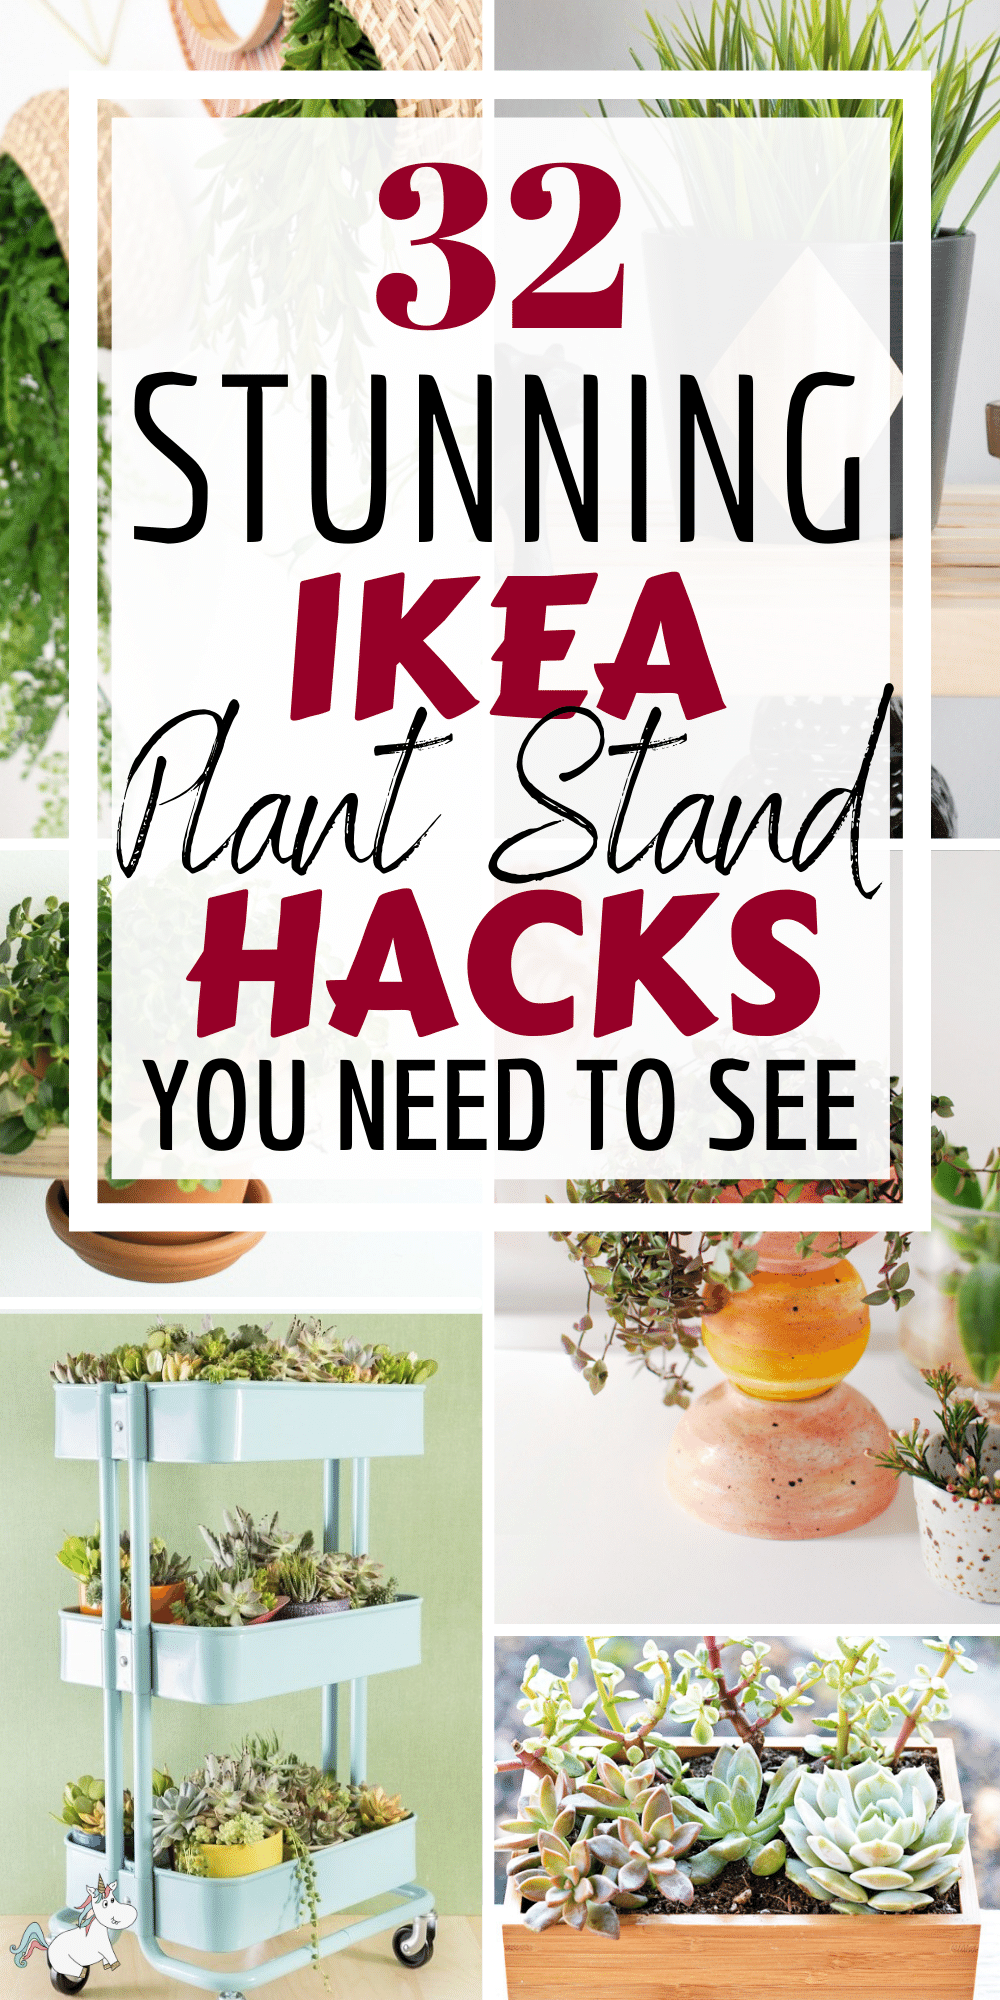 Are you ready for some stunning ikea hacks for plants? Here is a list of 32 IKEA plant stand hacks you will seriously love. They're the perfect DIY plant stands that you can make on a budget but look chic and stylish too! From window shelf planters, plant carts, succulent box planters and wall hanging planters... you'll be sure to find the perfect pDIY planter for your plants! Check them out today! #ikeahacks #planthacks #plantideas #ikeahacks